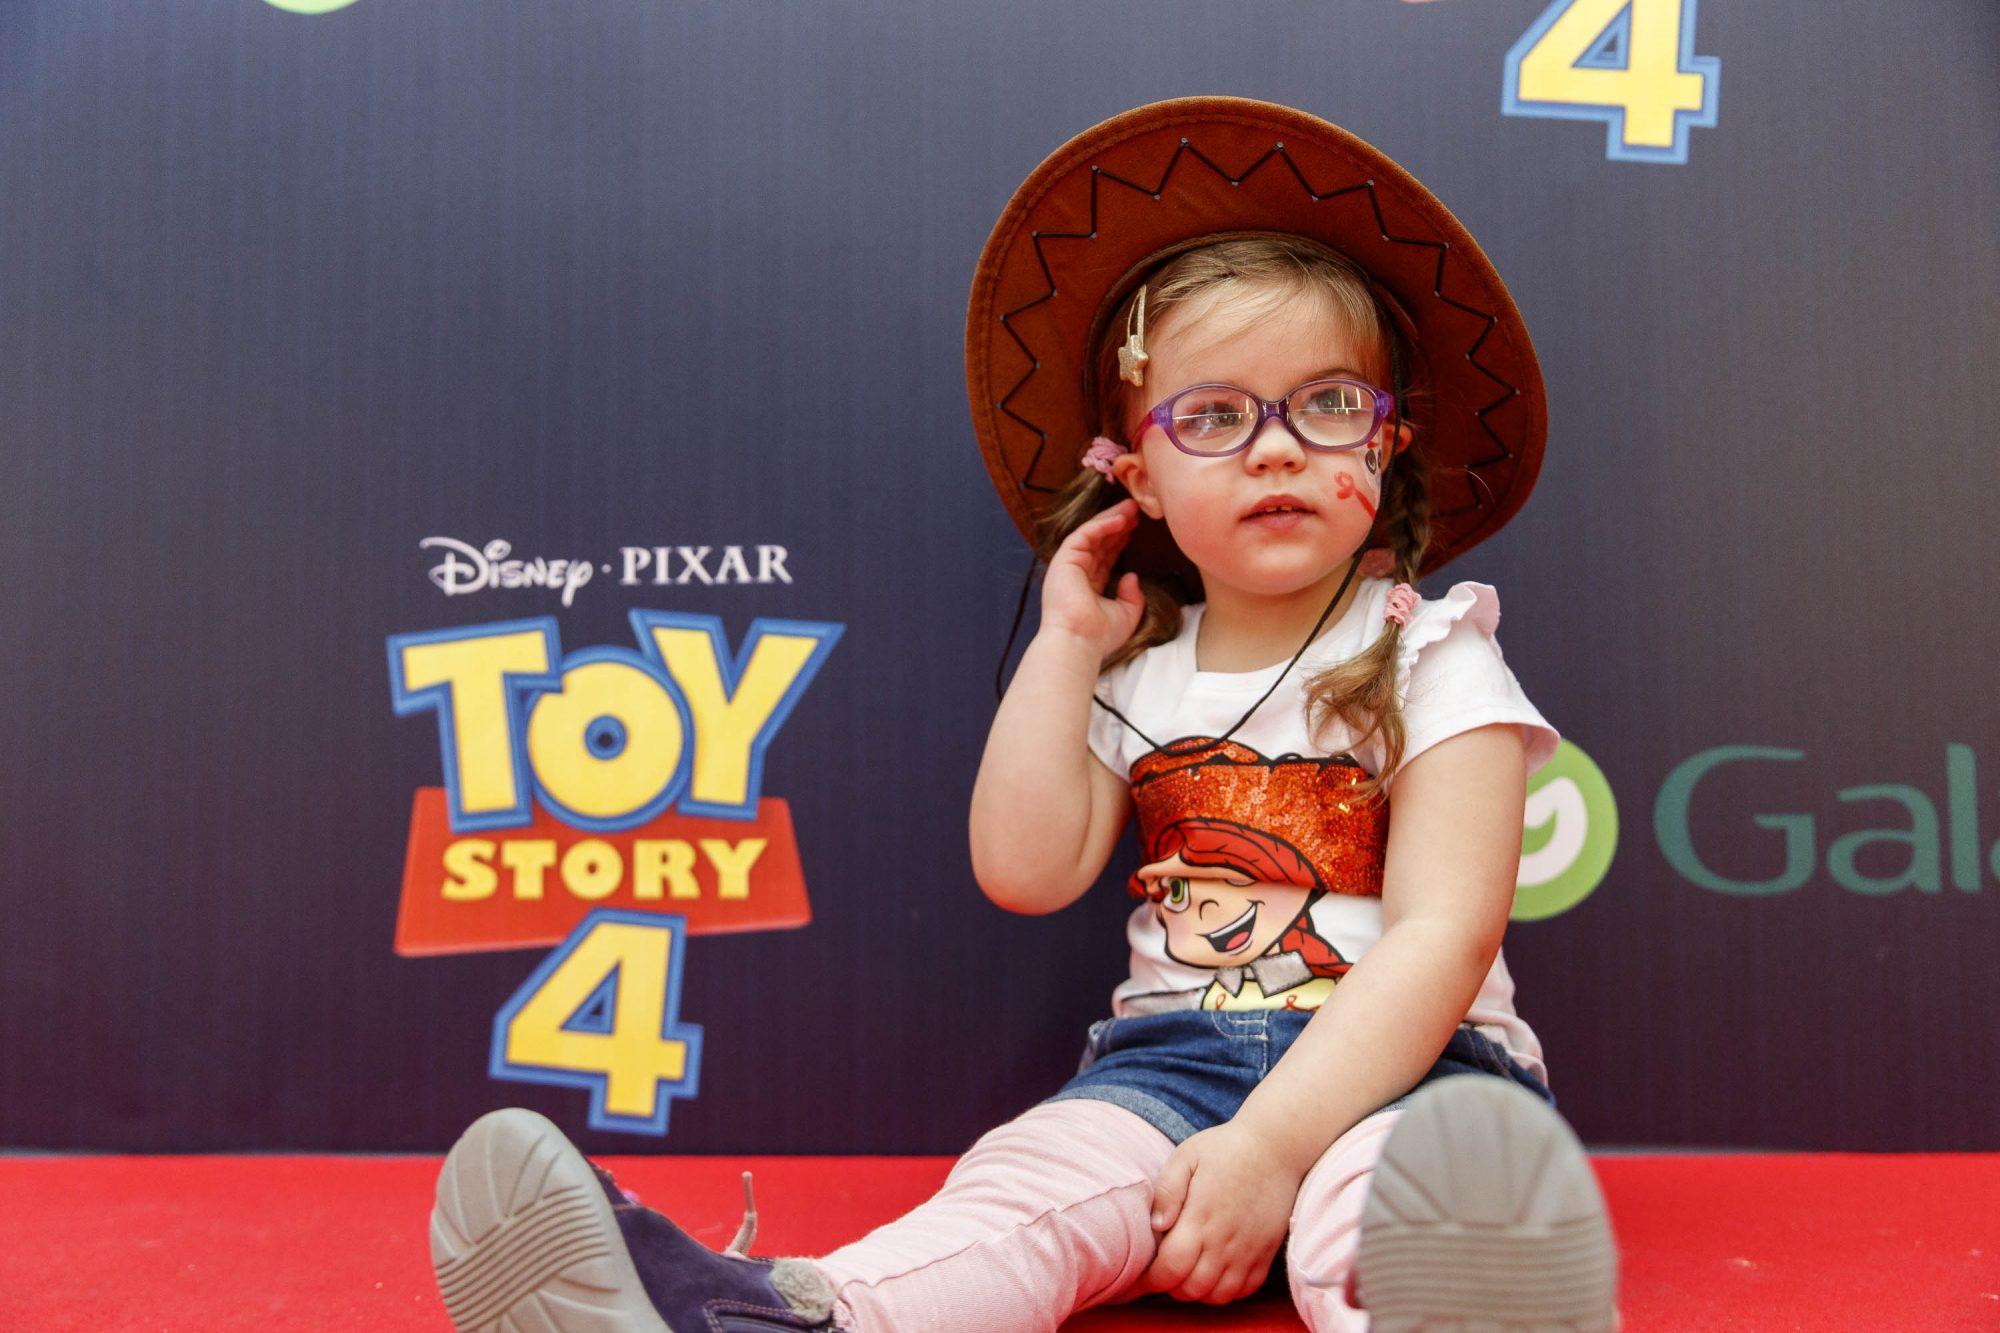 Mina McBride from Monaghan pictured at the special event screening of Disney Pixar's TOY STORY 4 in the Light House Cinema Dublin. Picture: Andres Poveda